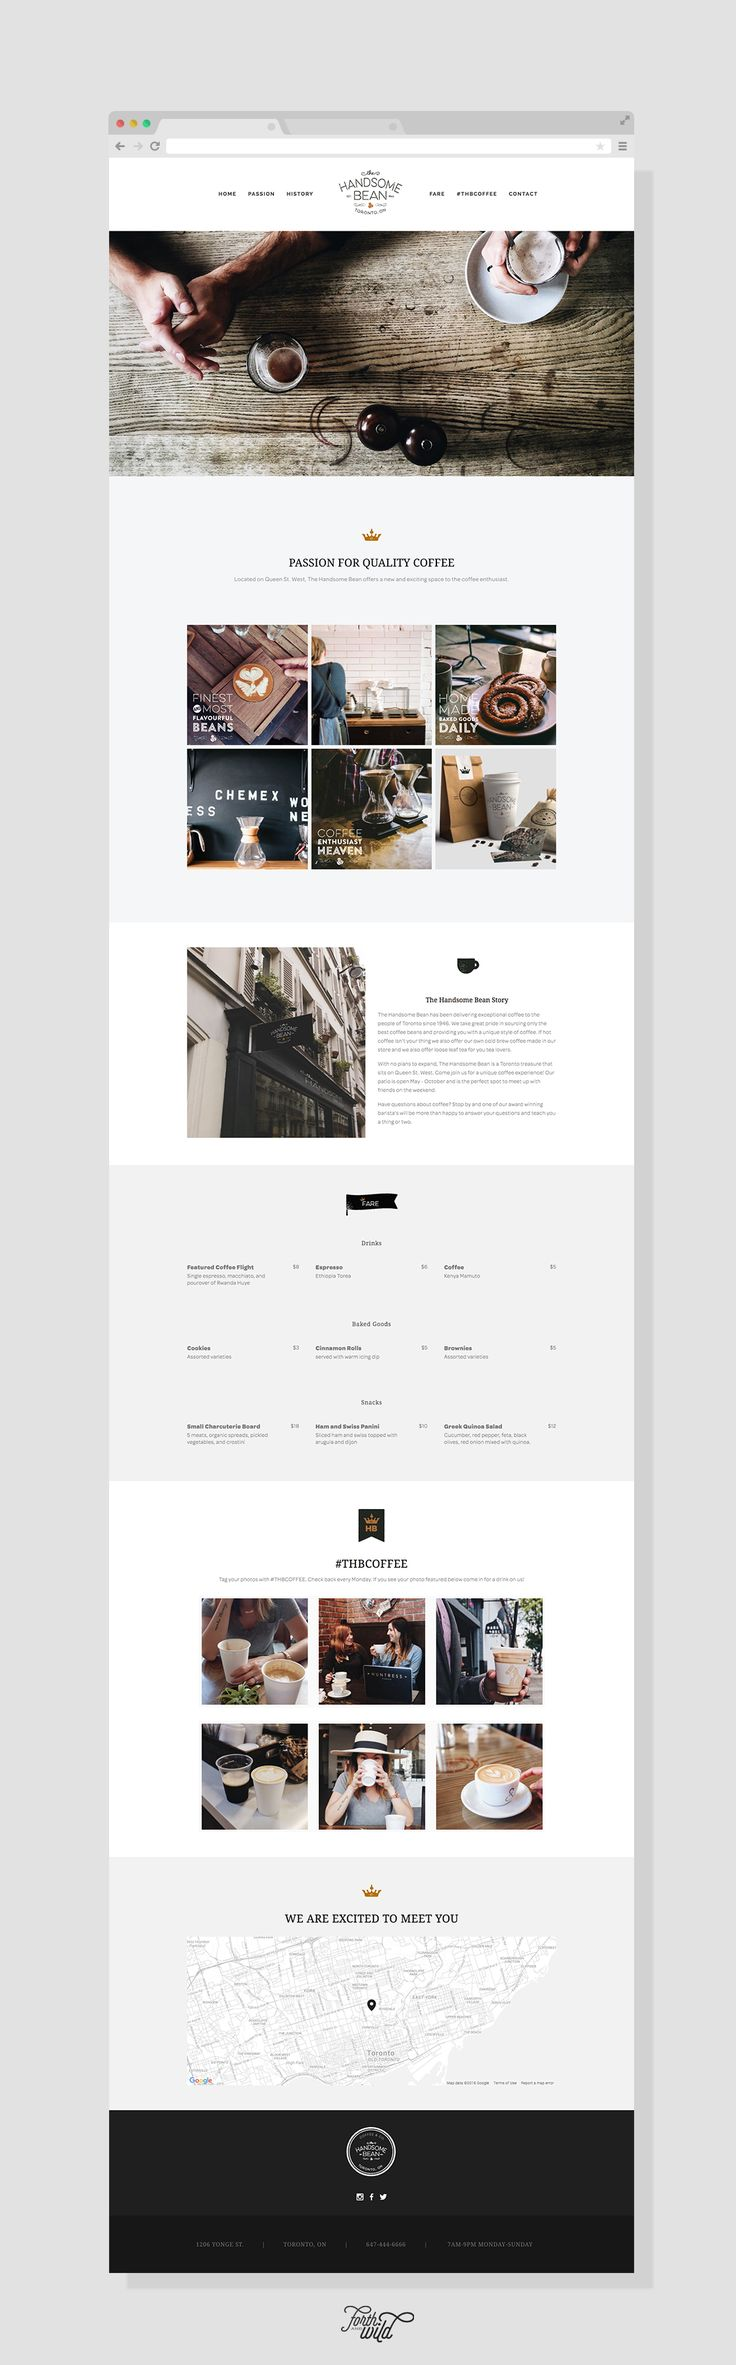 The Handsome Bean Website Design | Pinned By Www.koenvandieren.com